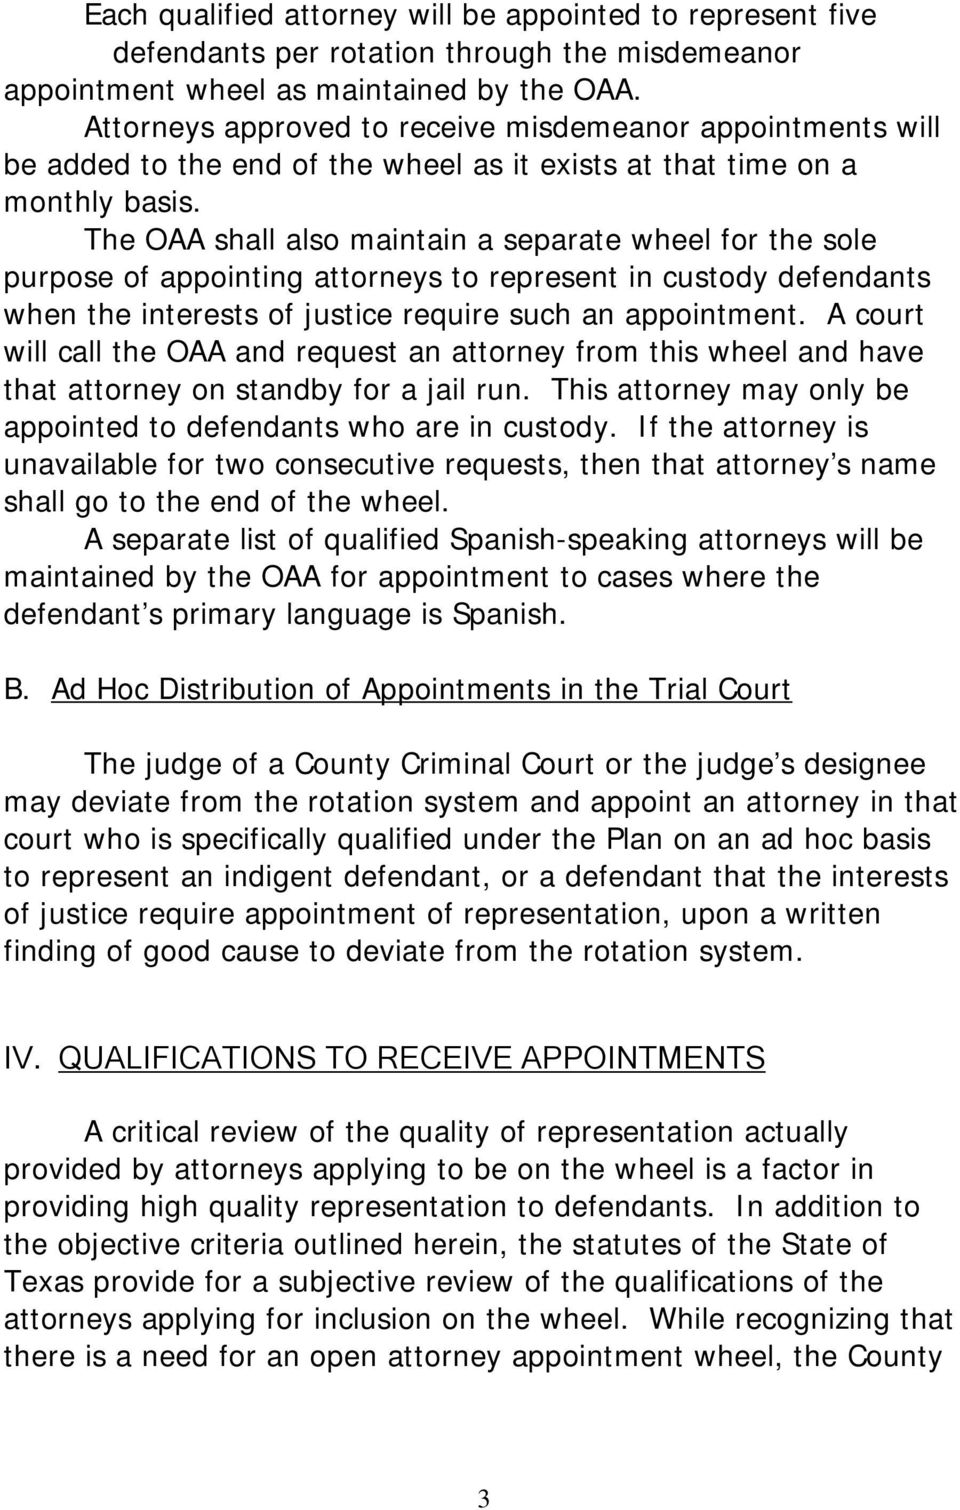 The OAA shall also maintain a separate wheel for the sole purpose of appointing attorneys to represent in custody defendants when the interests of justice require such an appointment.